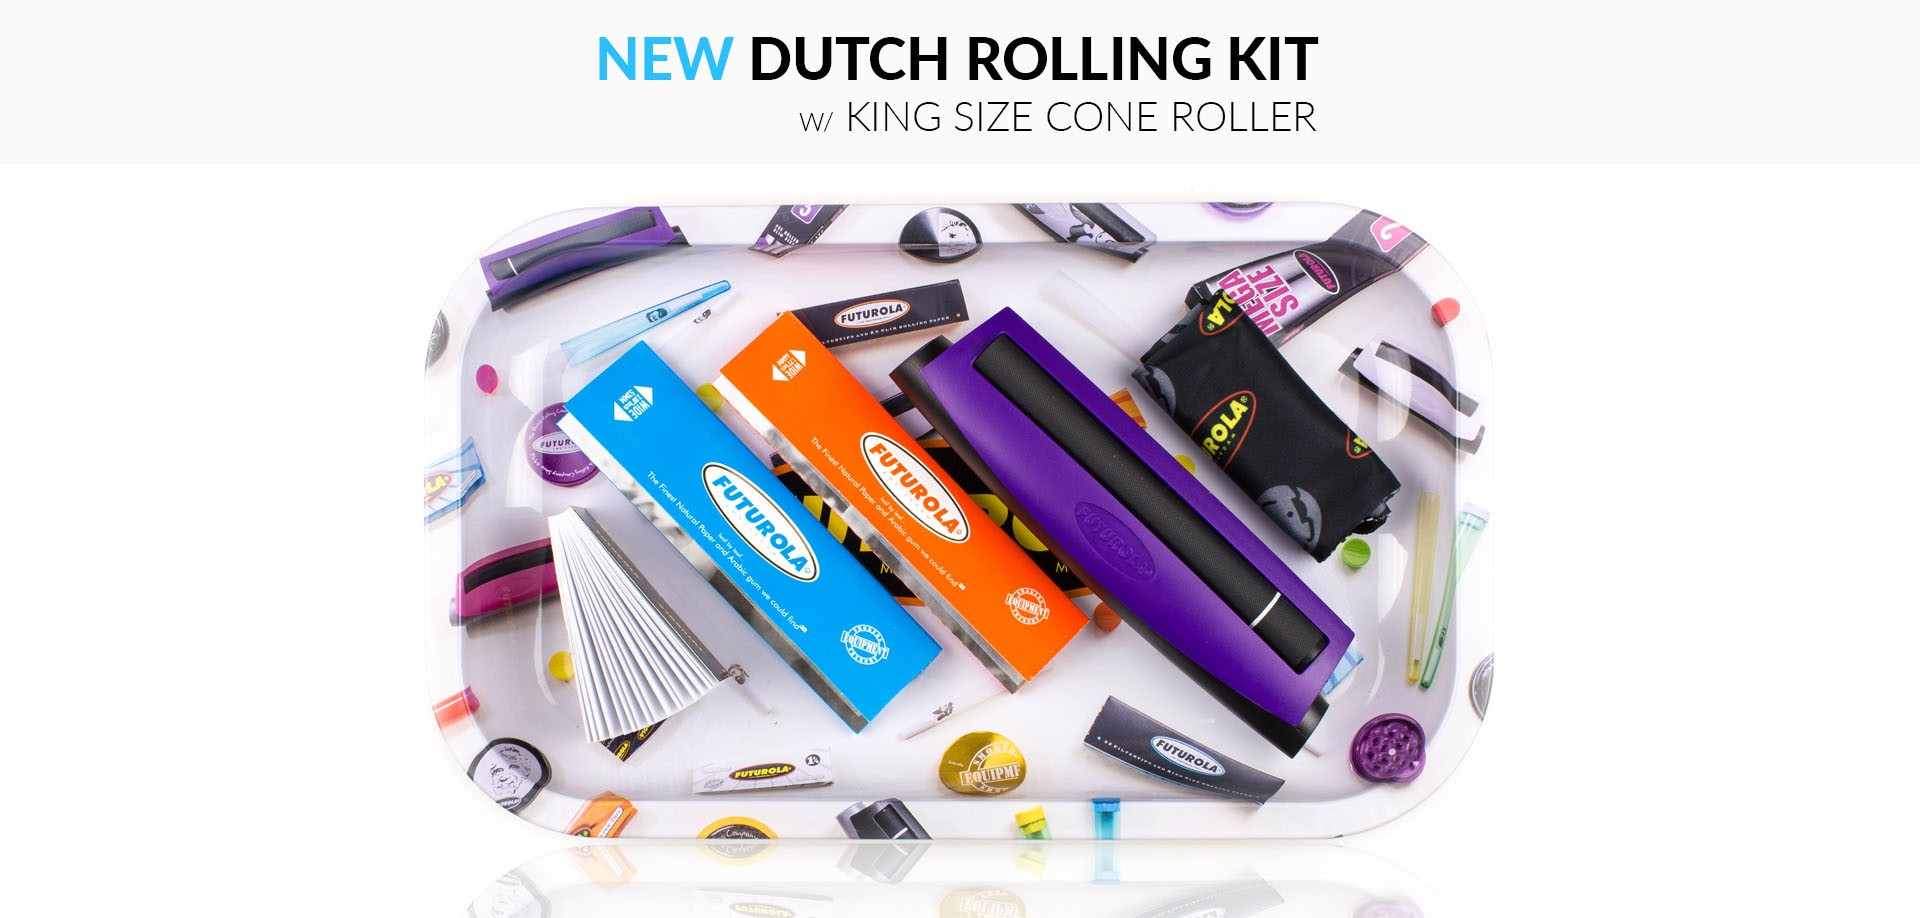 DUTCH ROLLING KIT W/ KING SIZE CONE ROLLER